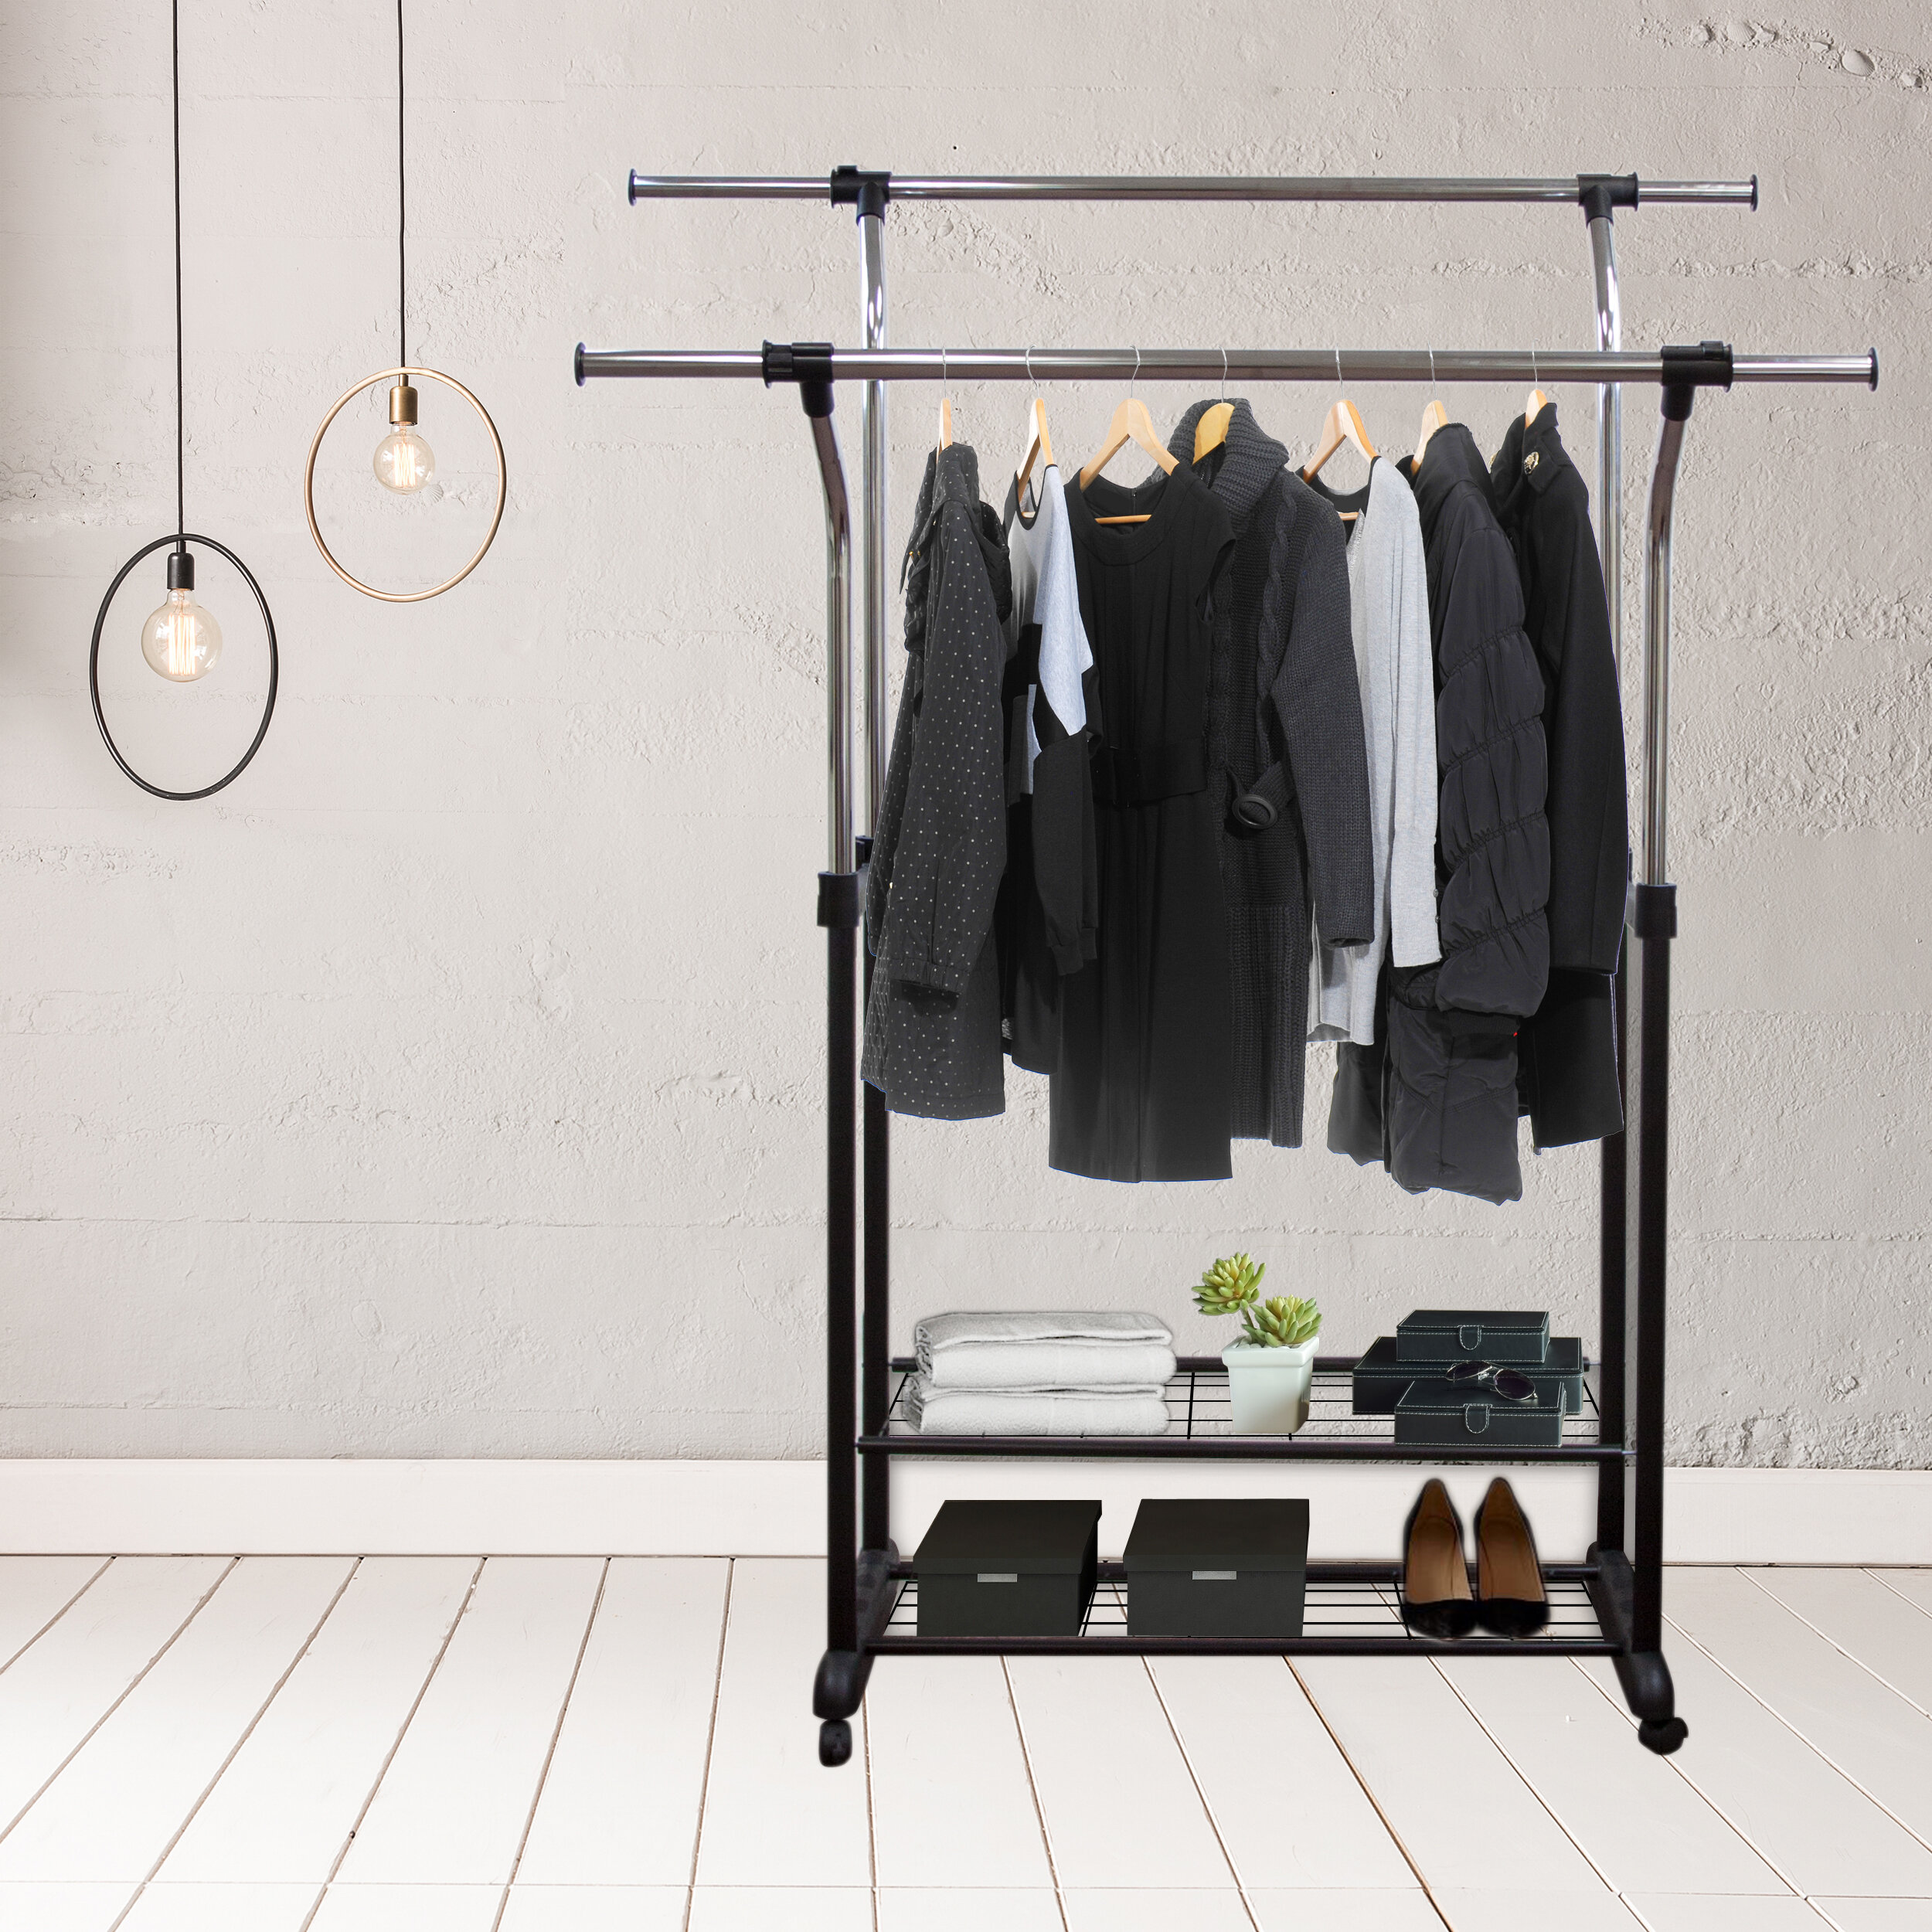 Rod Desyne Mobile 60 W Double Rail Clothes Rack With Utility Shelves Wayfair